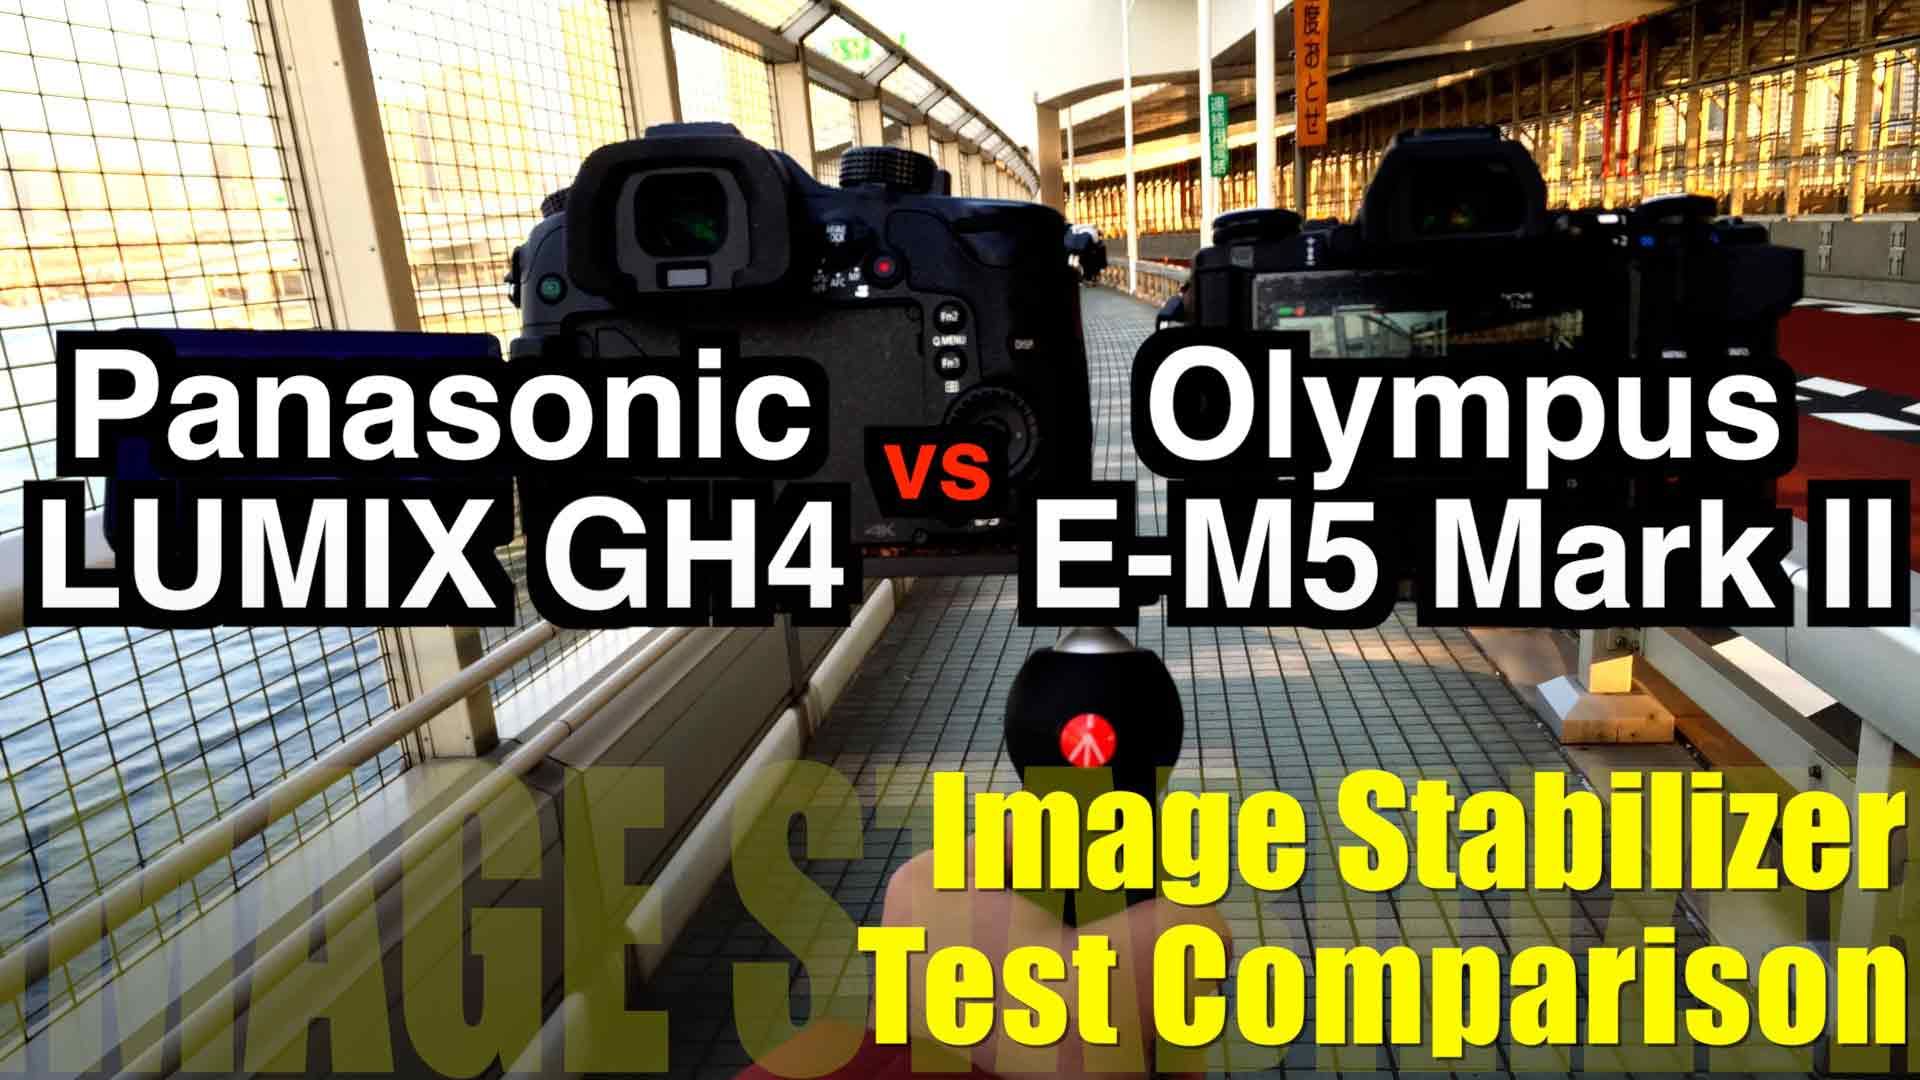 GH4-vs-E-M5-MK-II-Featured-Image